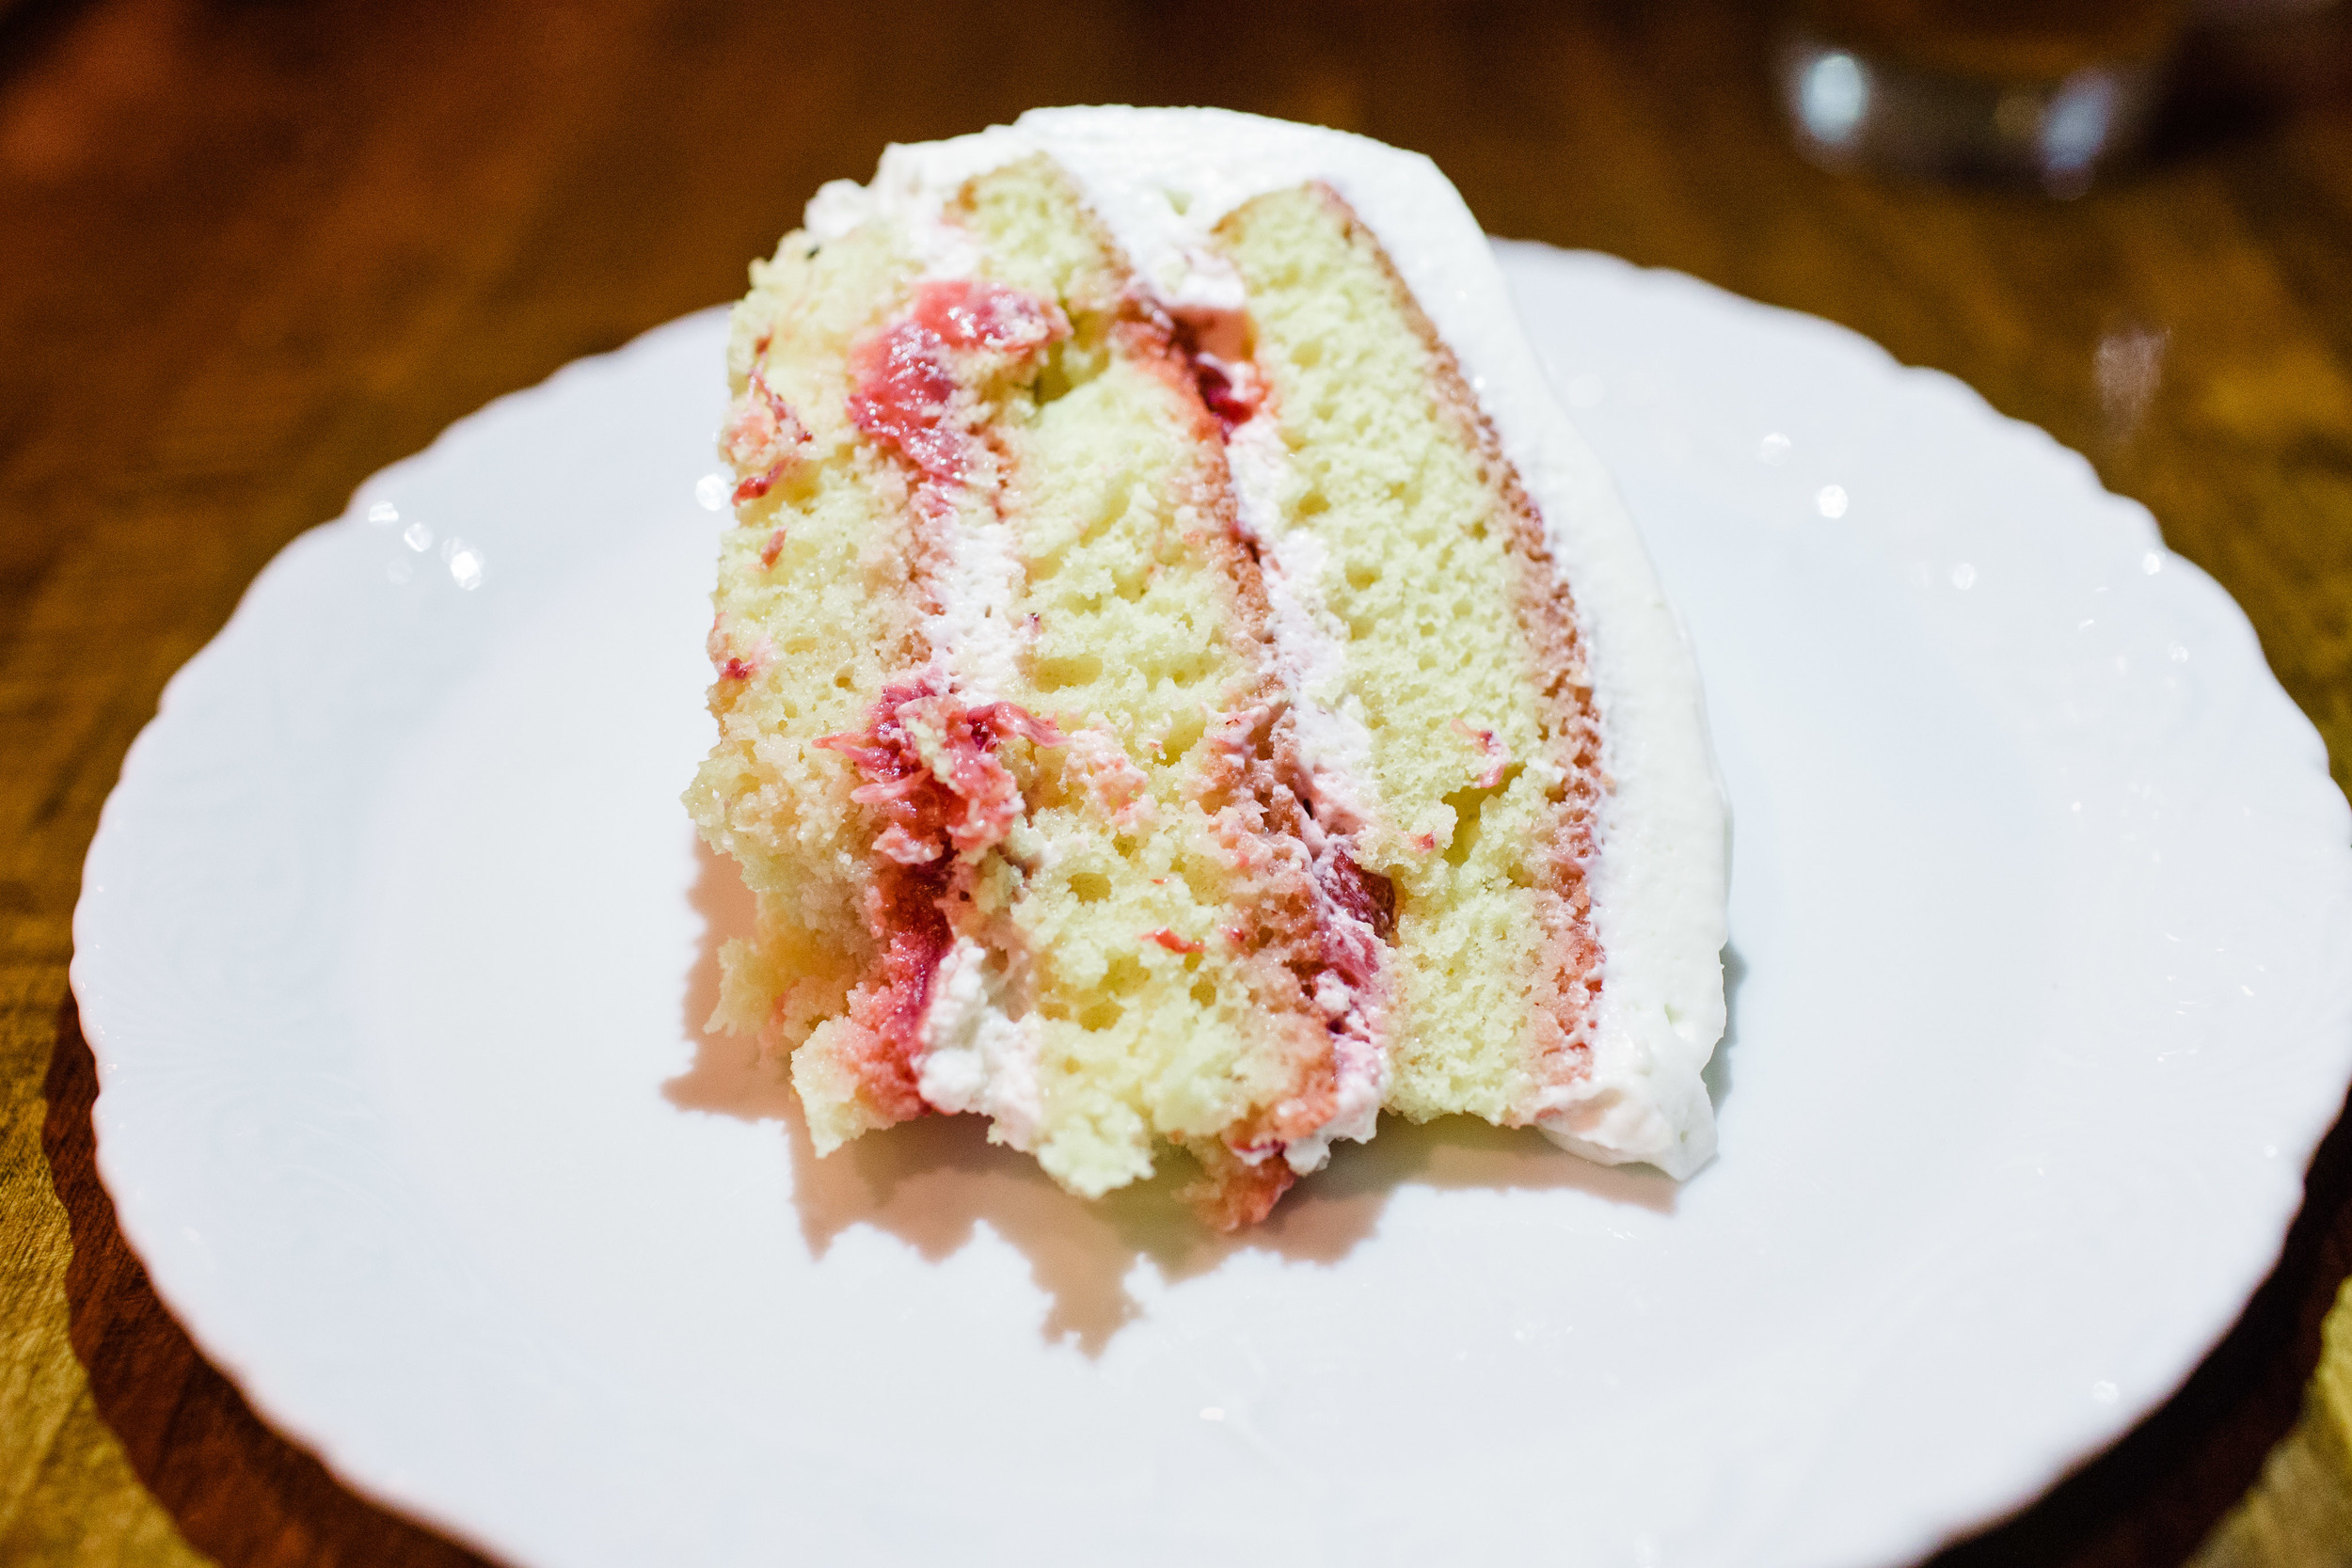 Strawberry Cake from Executive Chef Ashley Moser's Mother